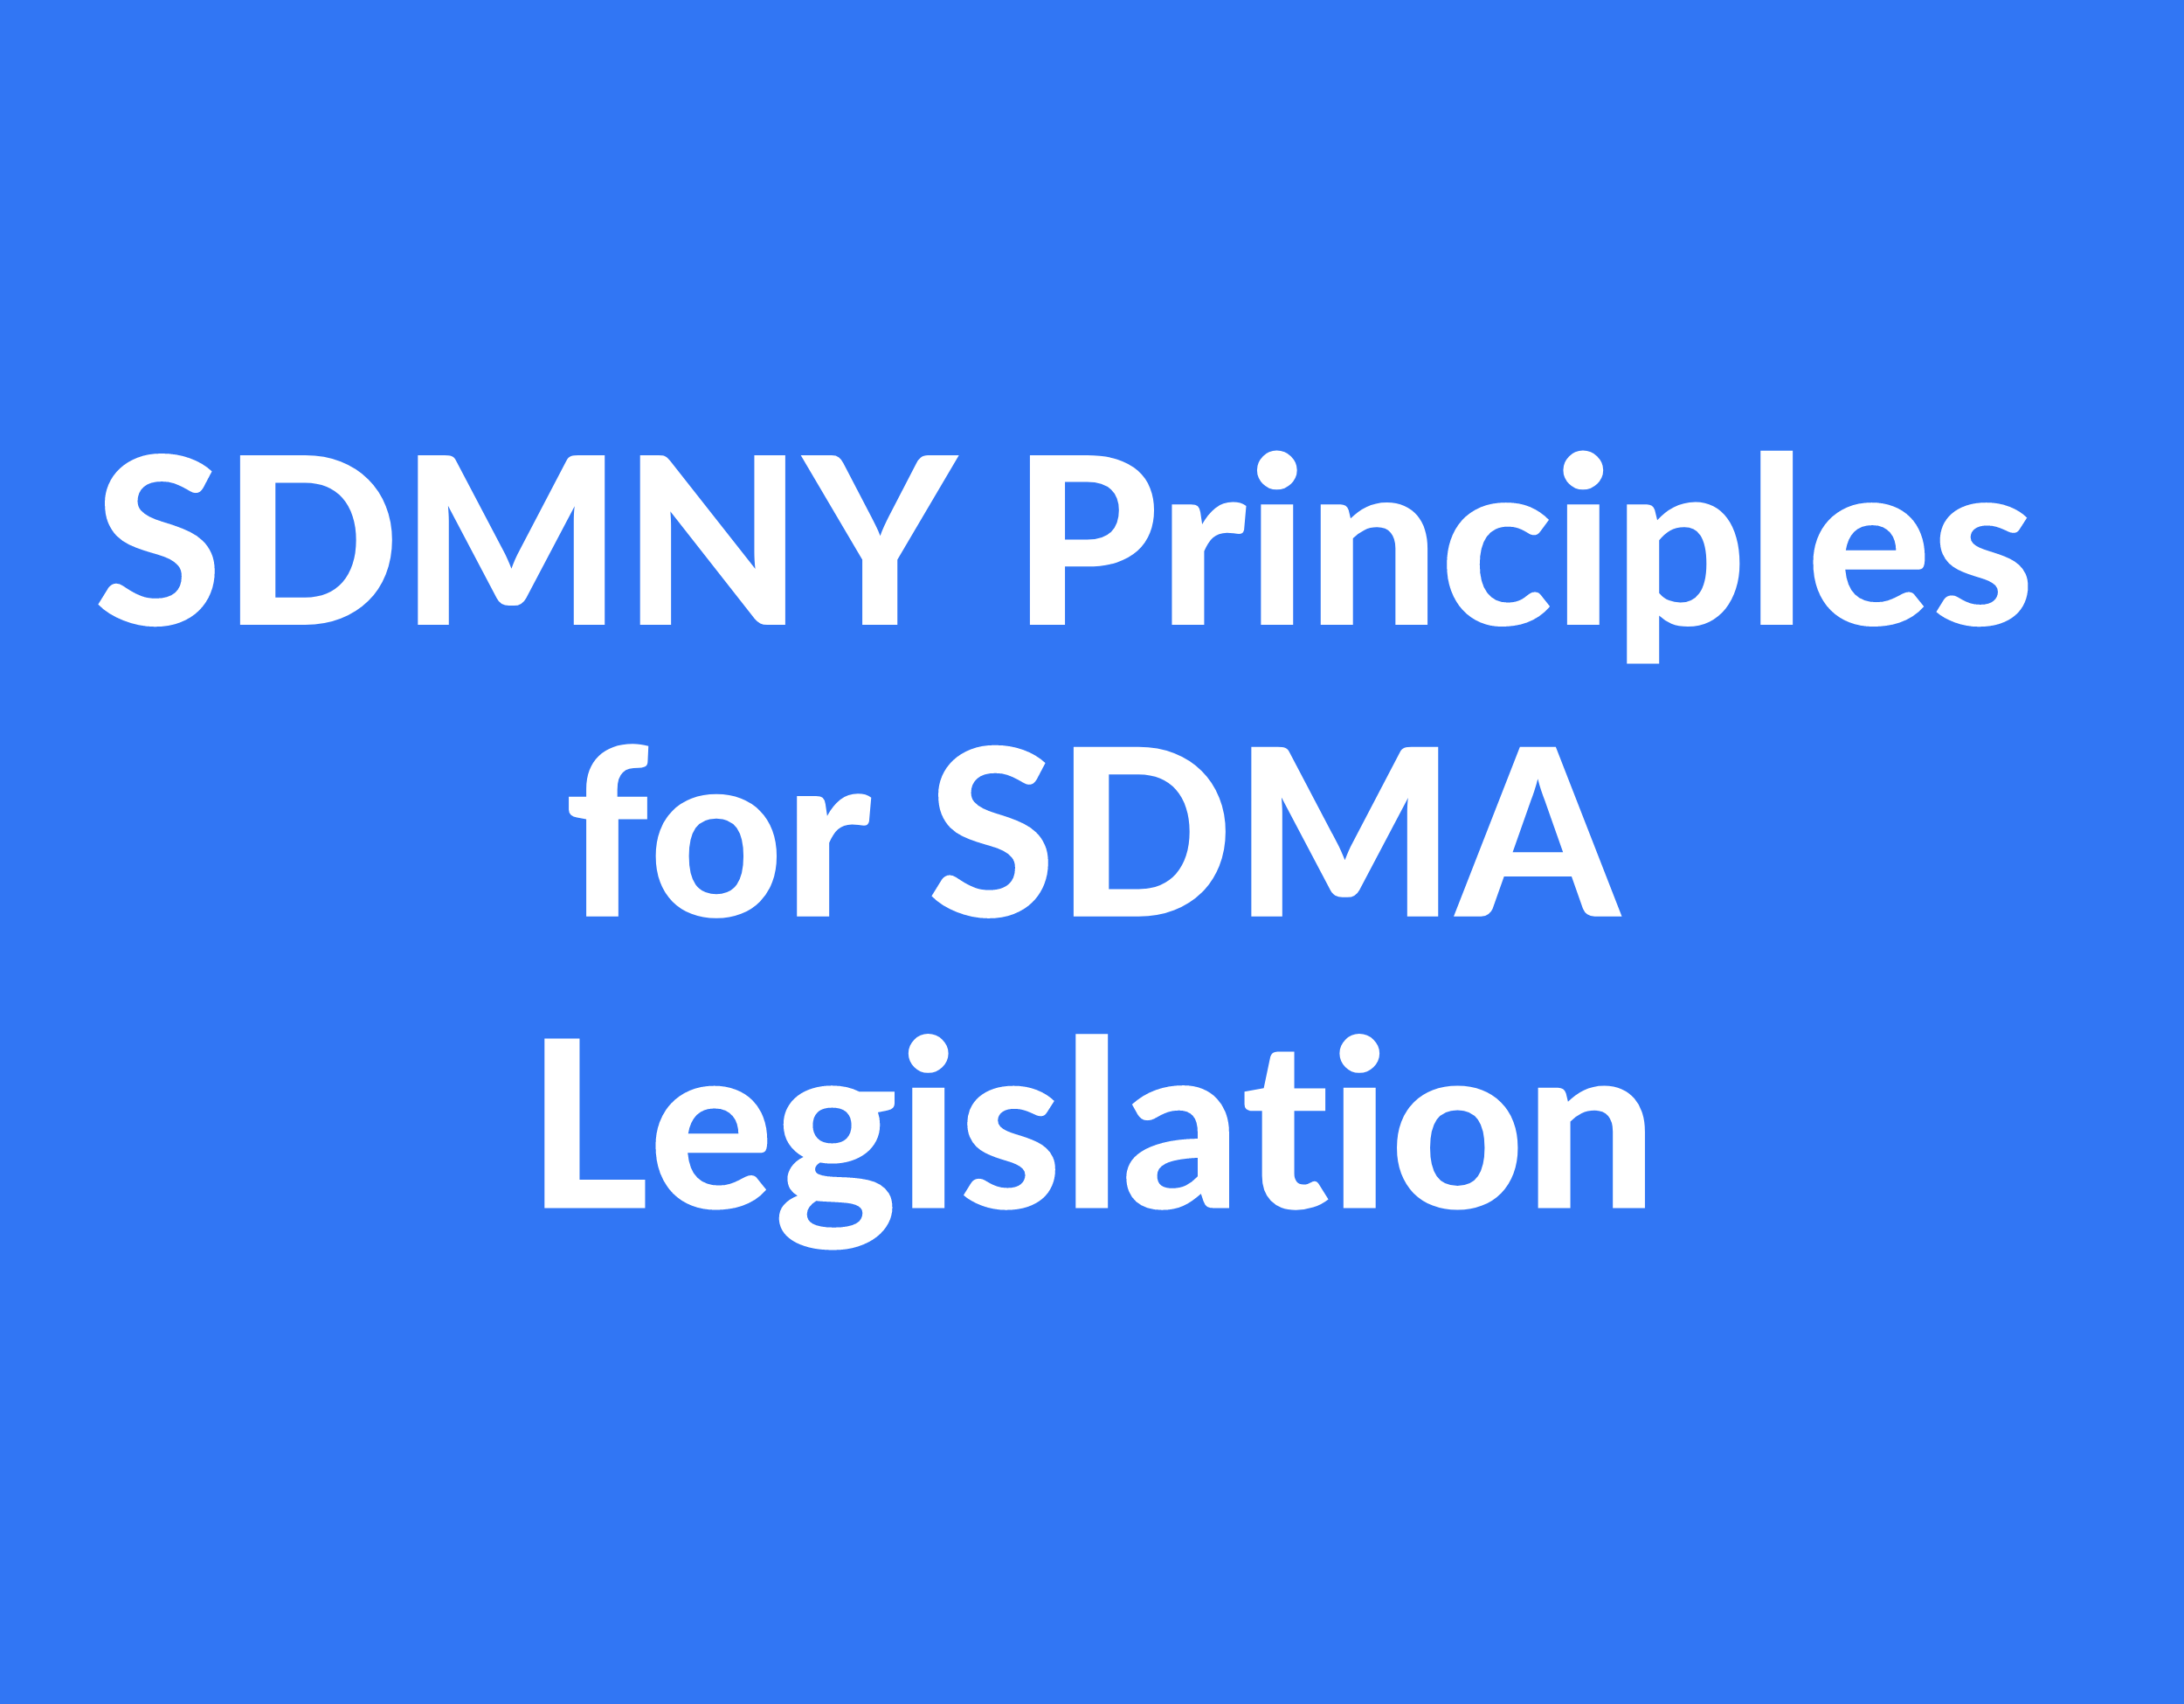 SDMNY Principles for an SDMA Law